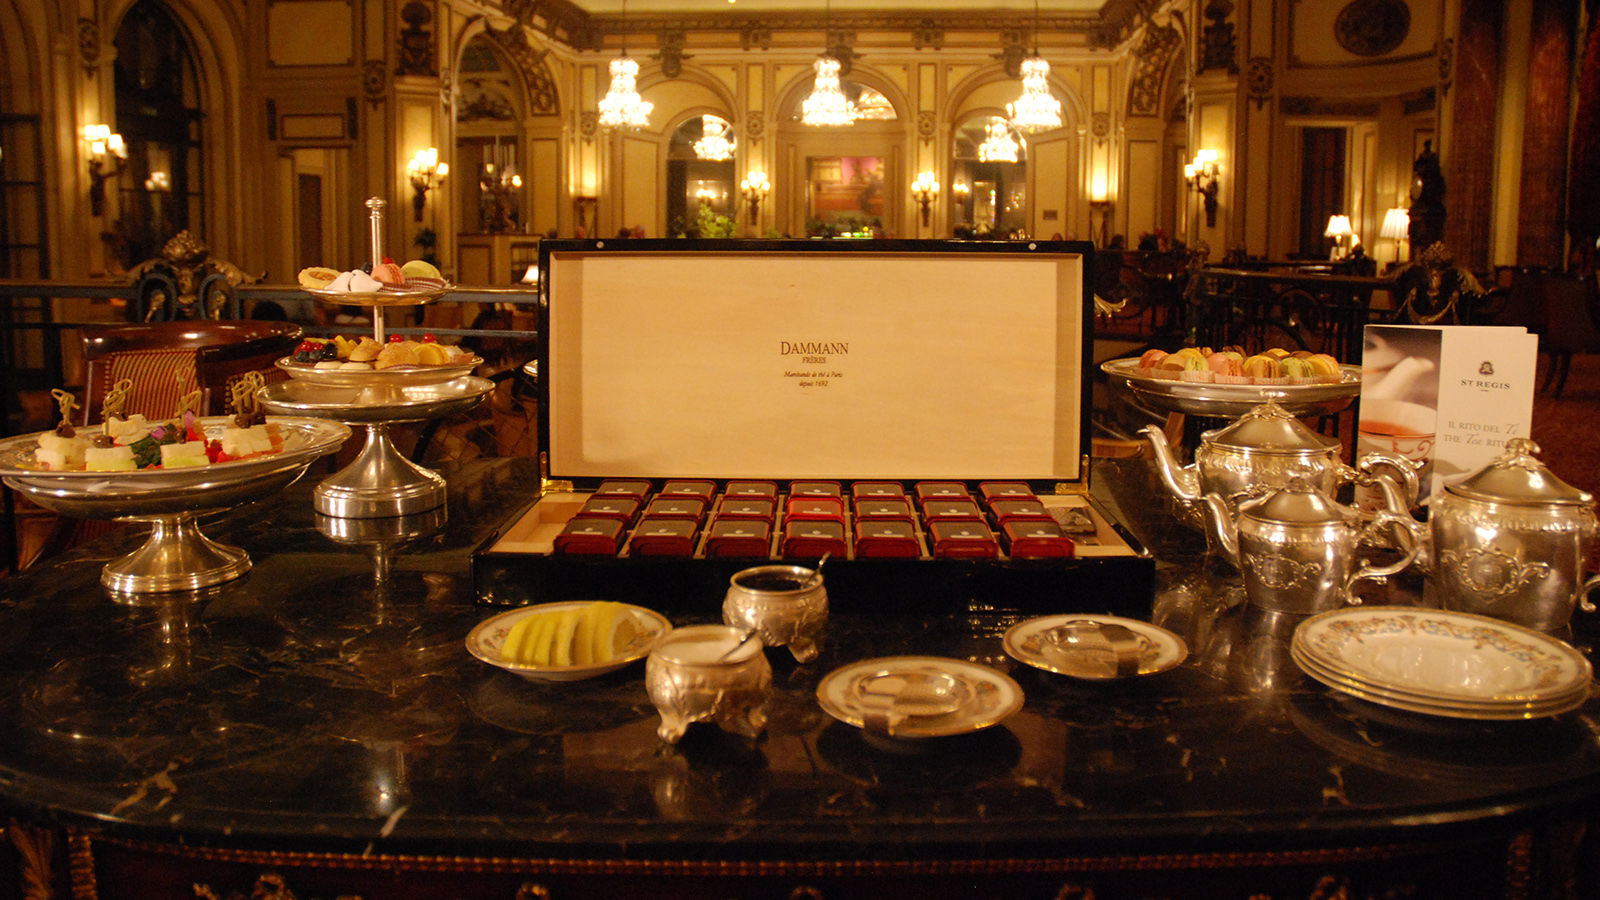 The St. Regis Afternoon Tea